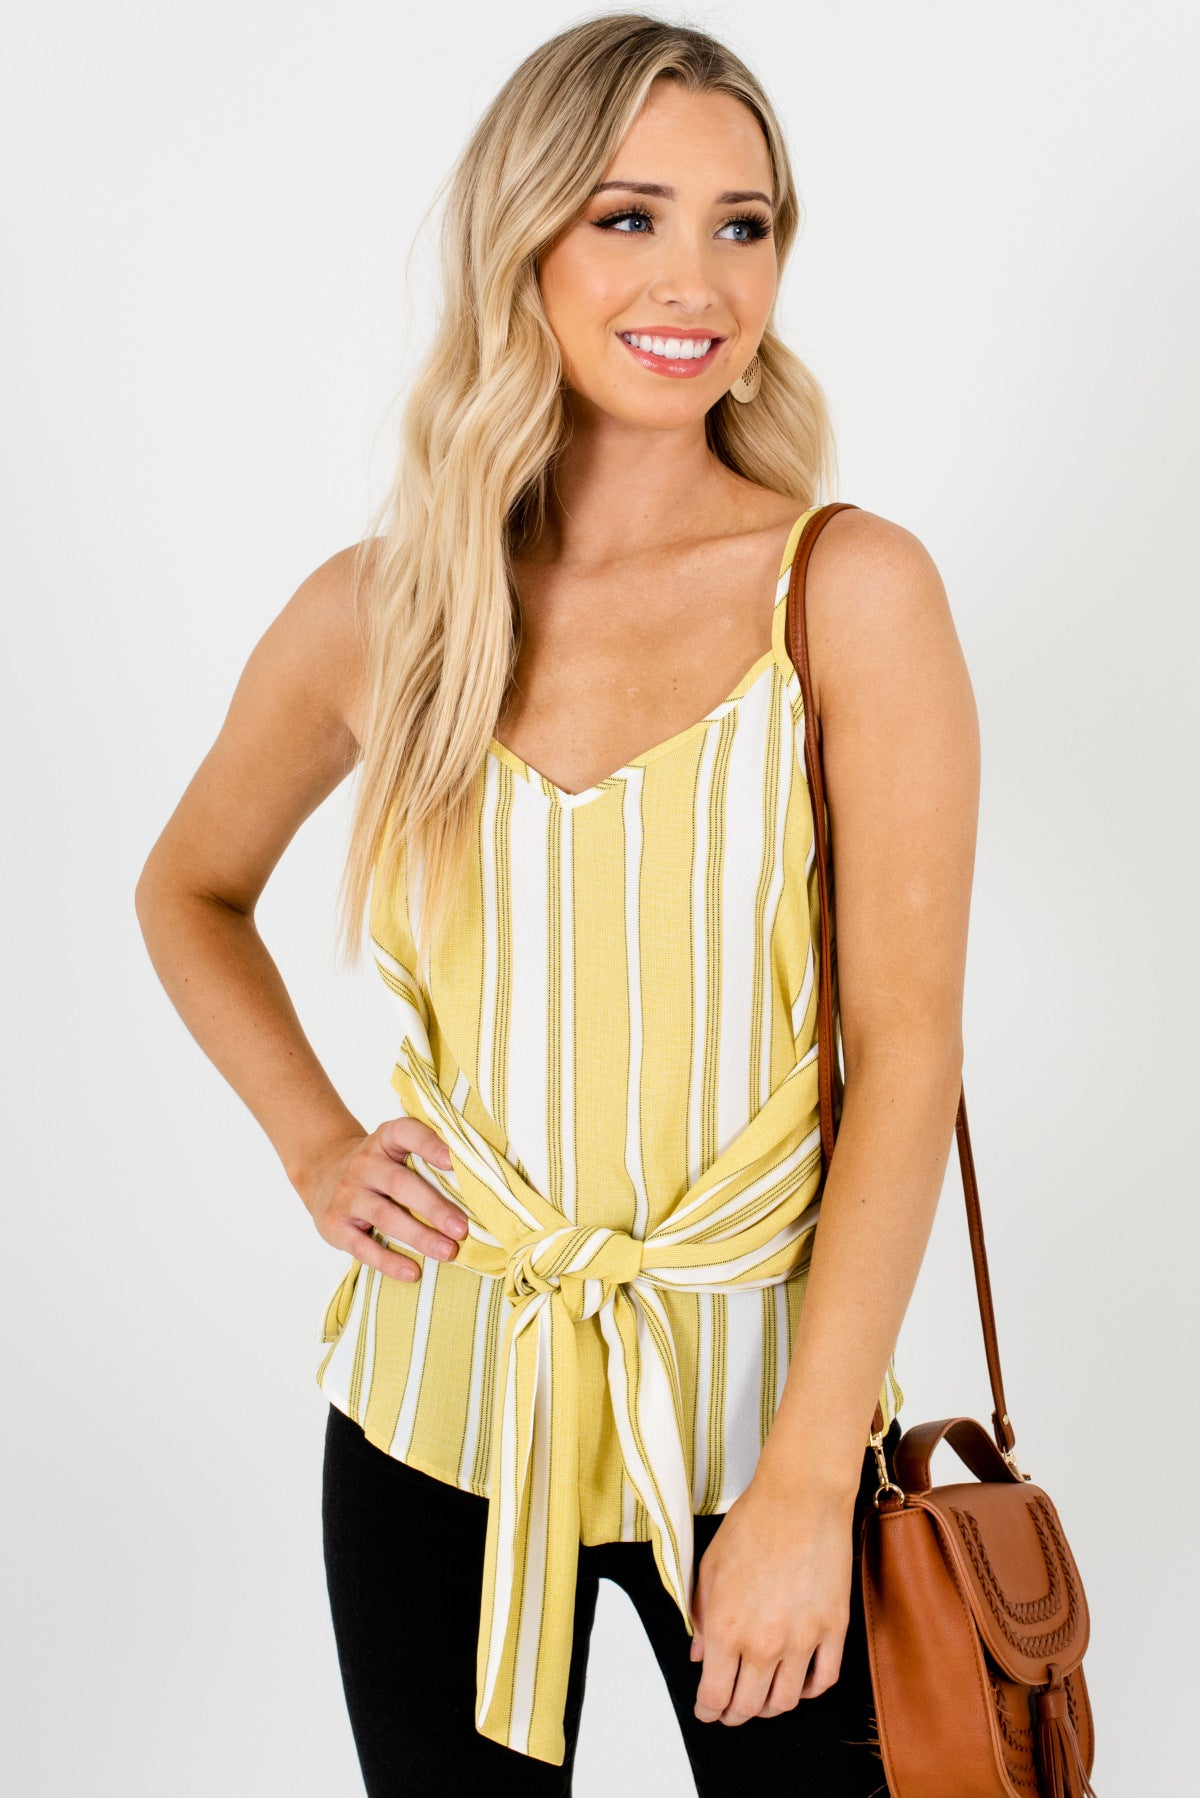 Yellow-Green Striped Patterned Boutique Tank Tops for Women